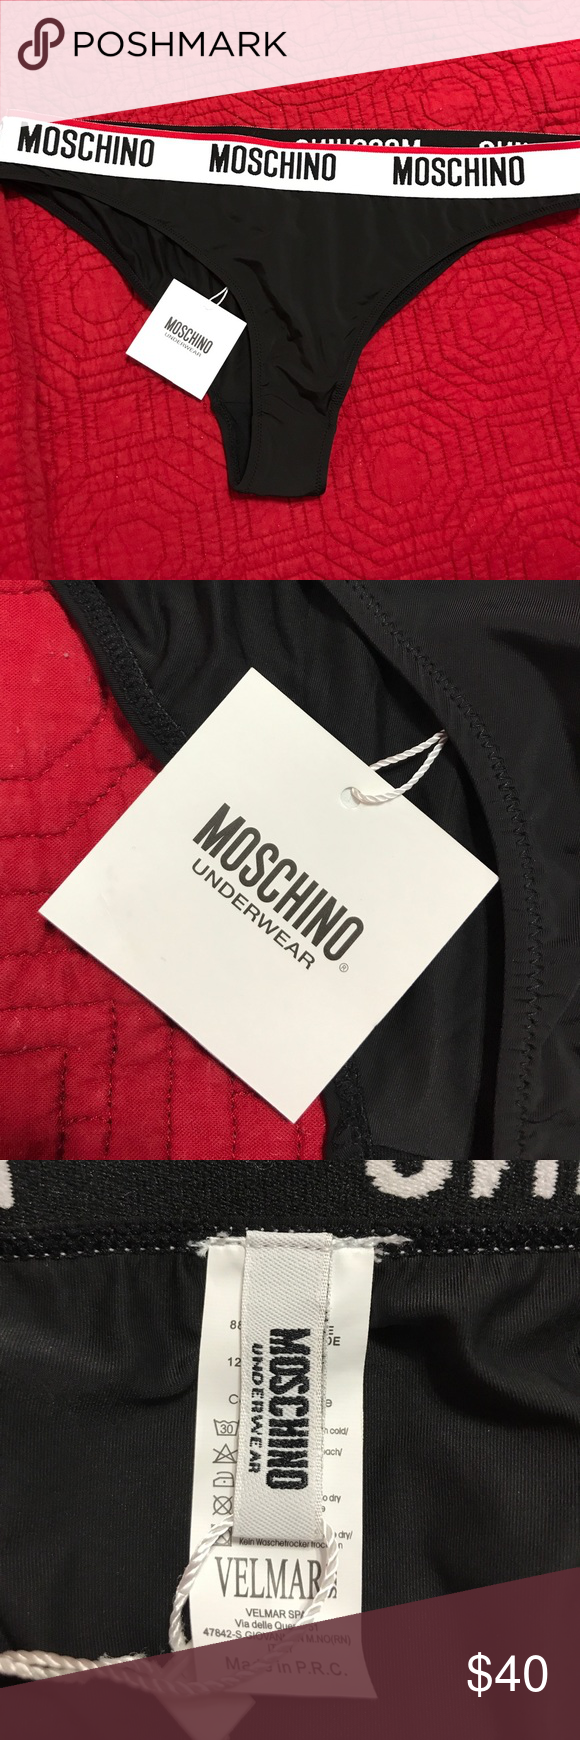 81cce78768 👙MOSCHINO BLACK WOMENS UNDERWEAR! Brand new with tags Moschino women s  underwear in a size XL!! These are very soft and stylish!! Get them quick  before hey ...